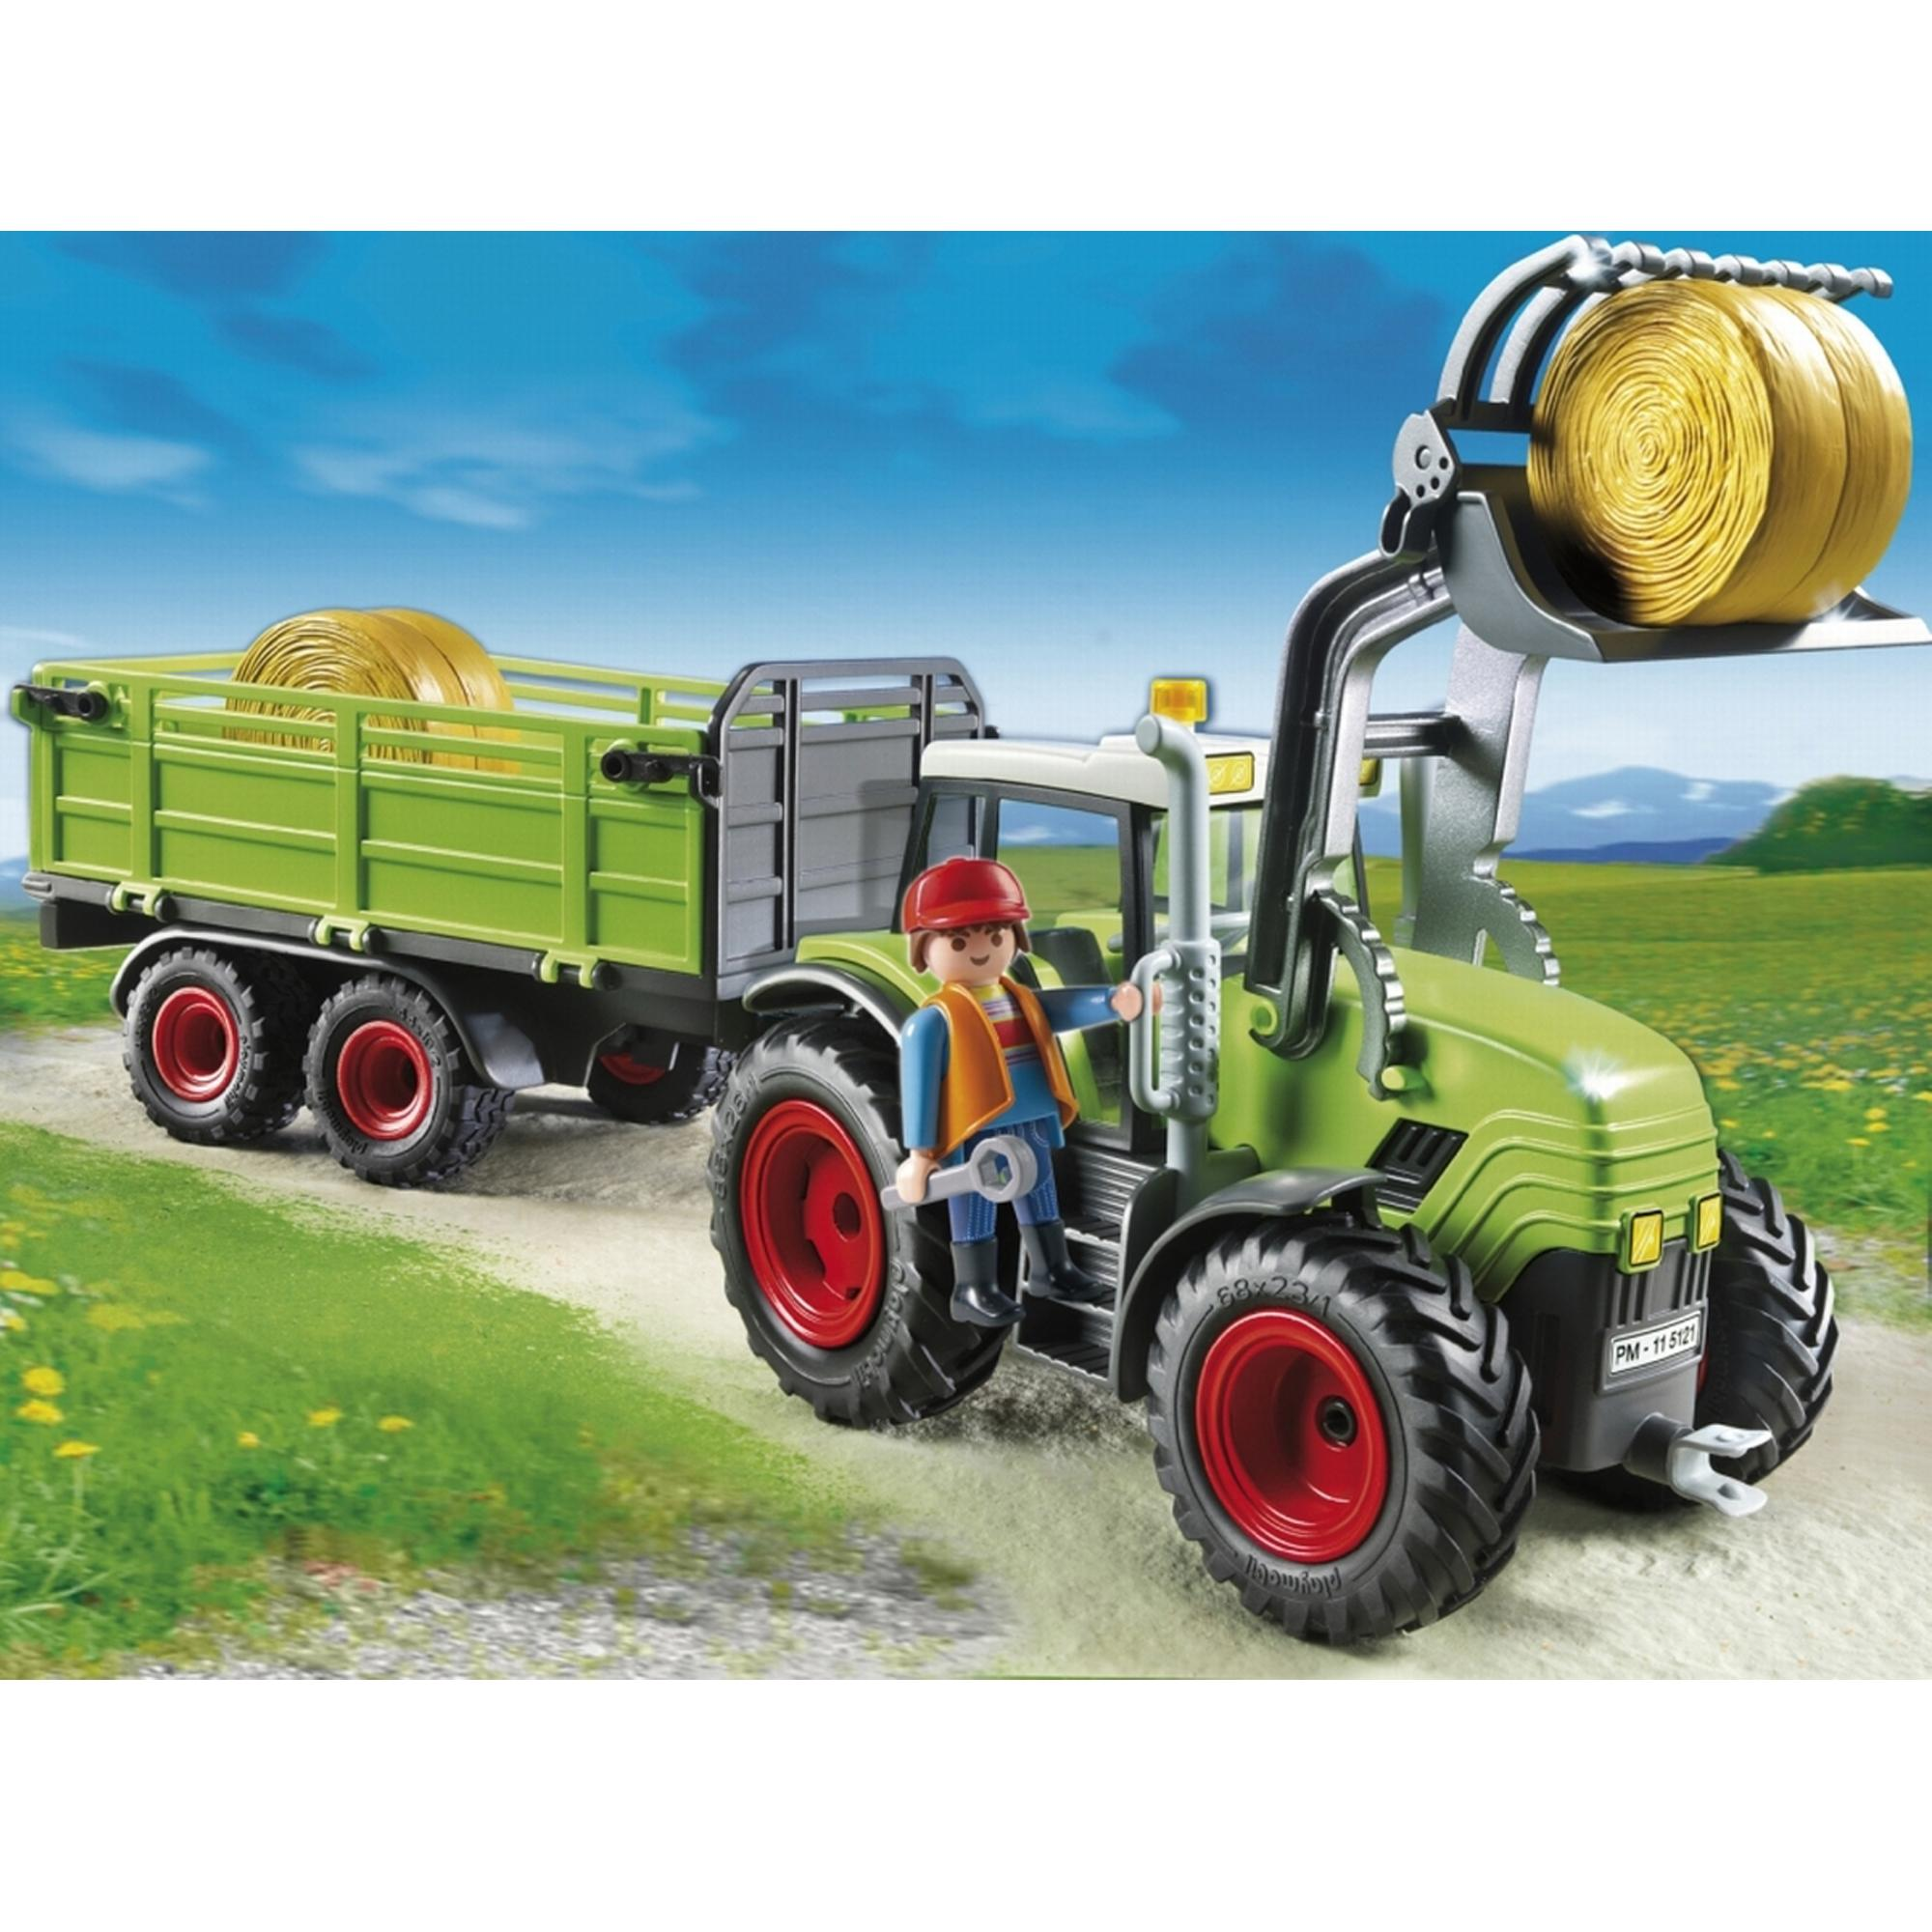 Playmobil Tractor With Trailer 5121 - £33.00 - Hamleys for Toys and ...